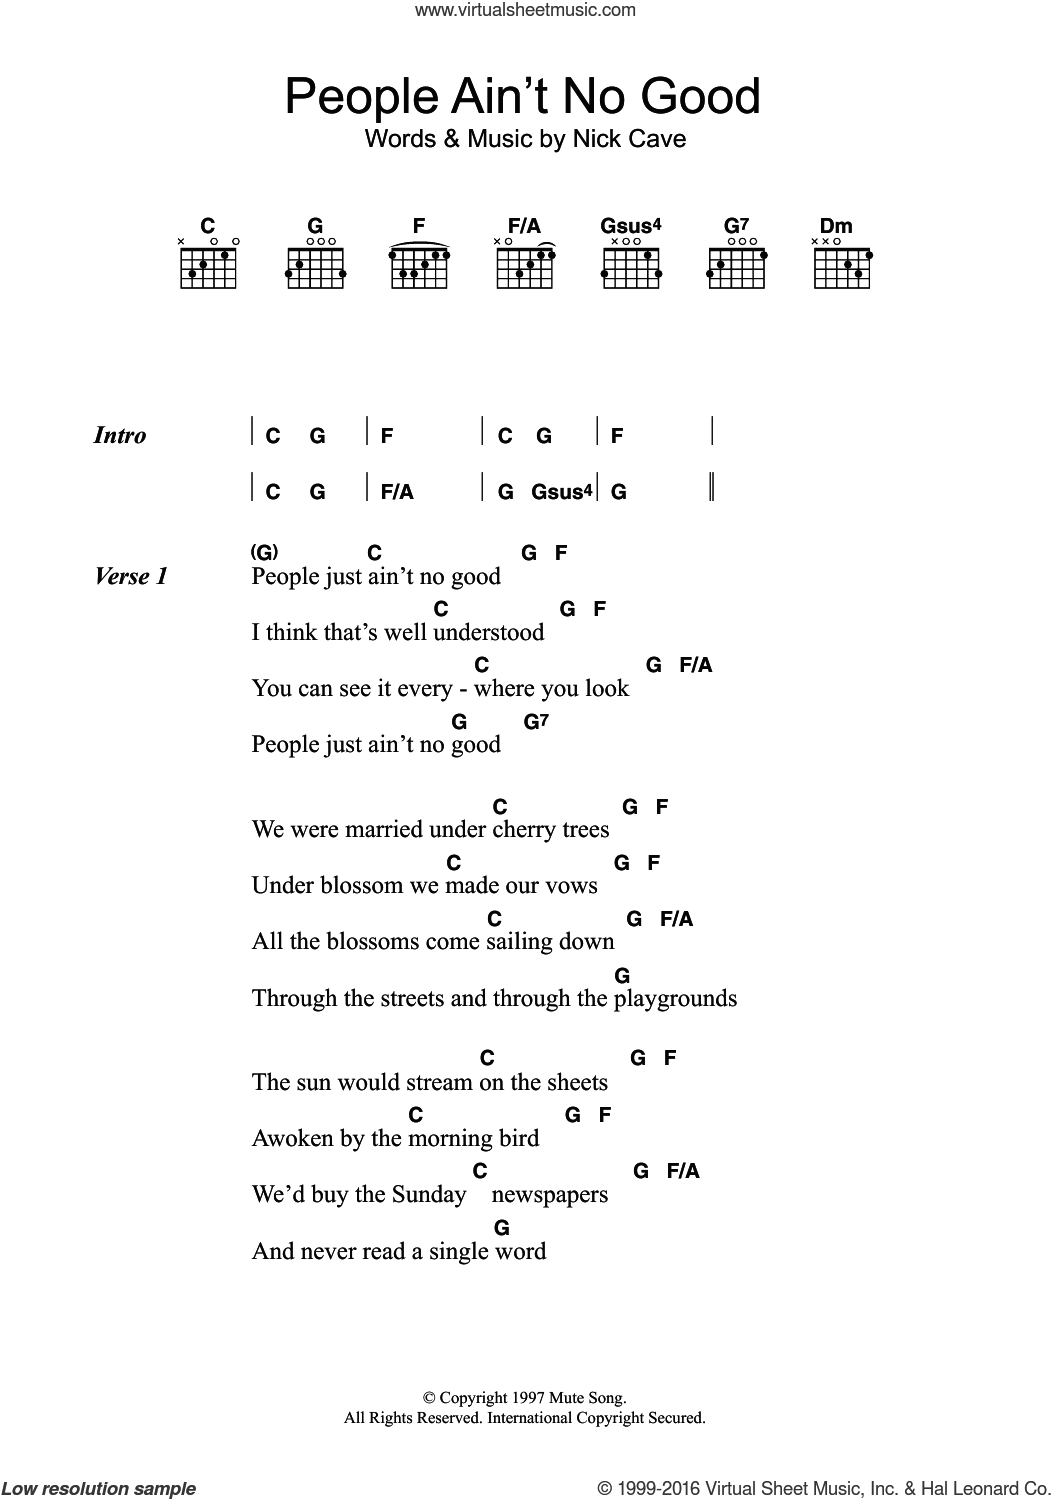 People Ain't No Good sheet music for guitar (chords) by Nick Cave, intermediate